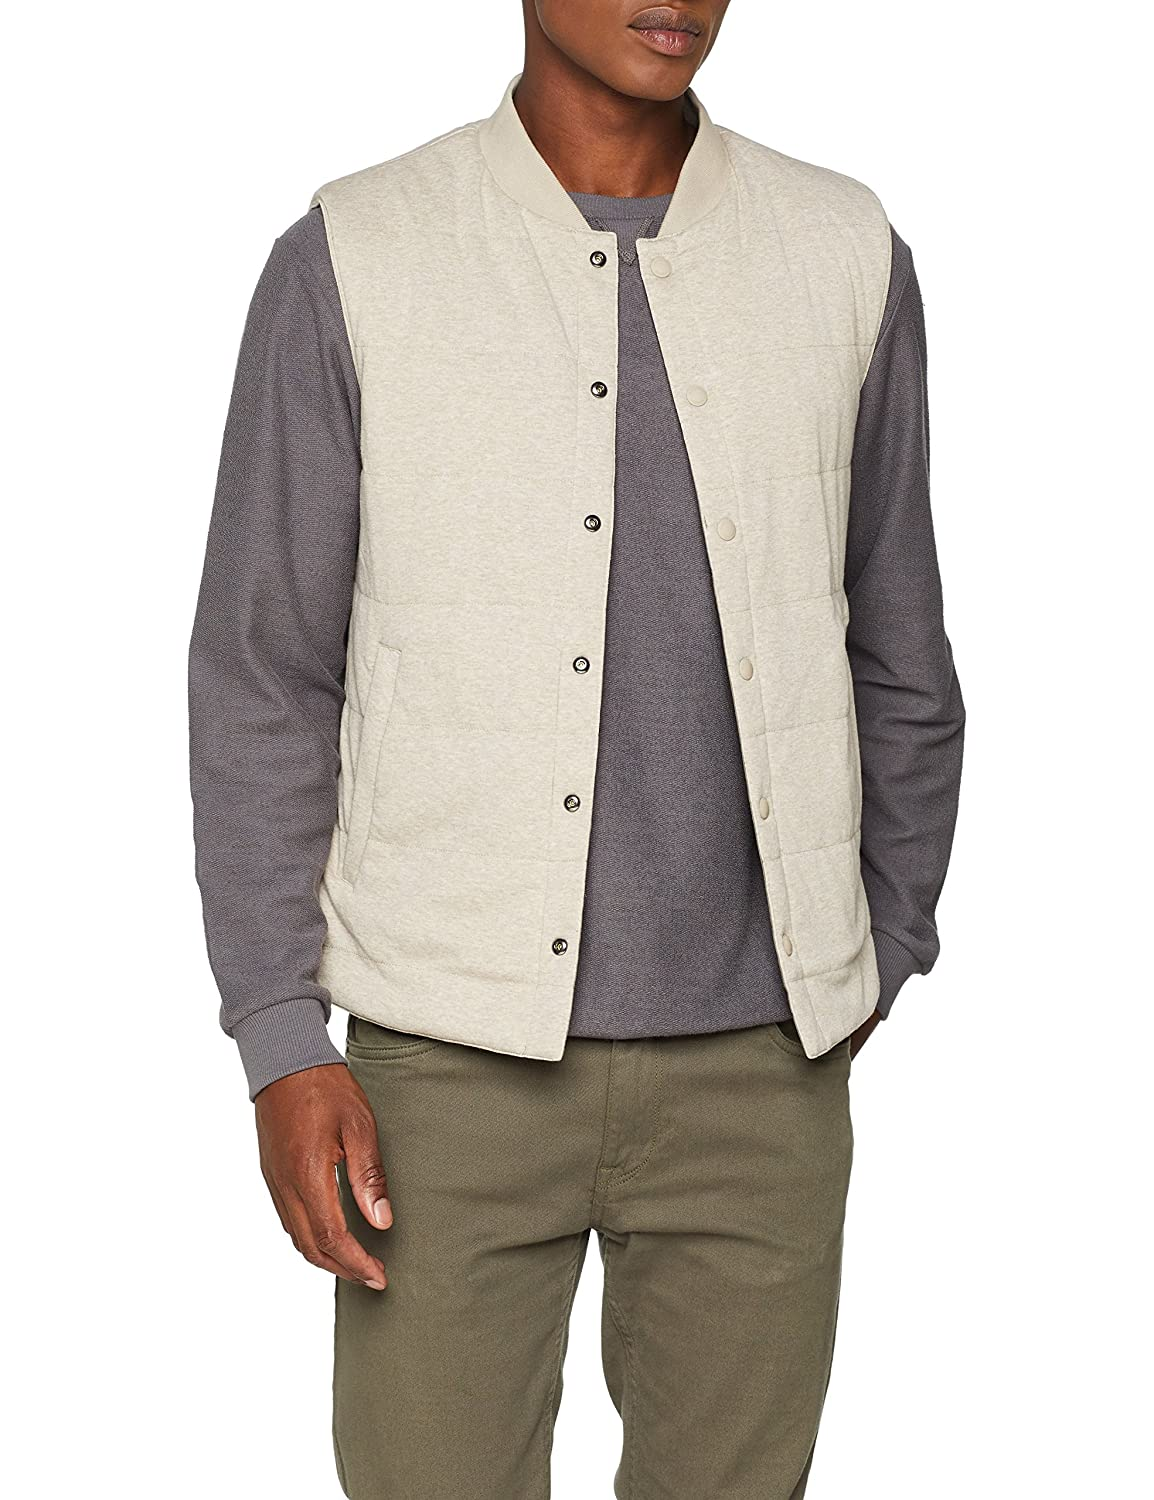 Hackett London Pembridge Rev Gilet, Chaleco para Hombre